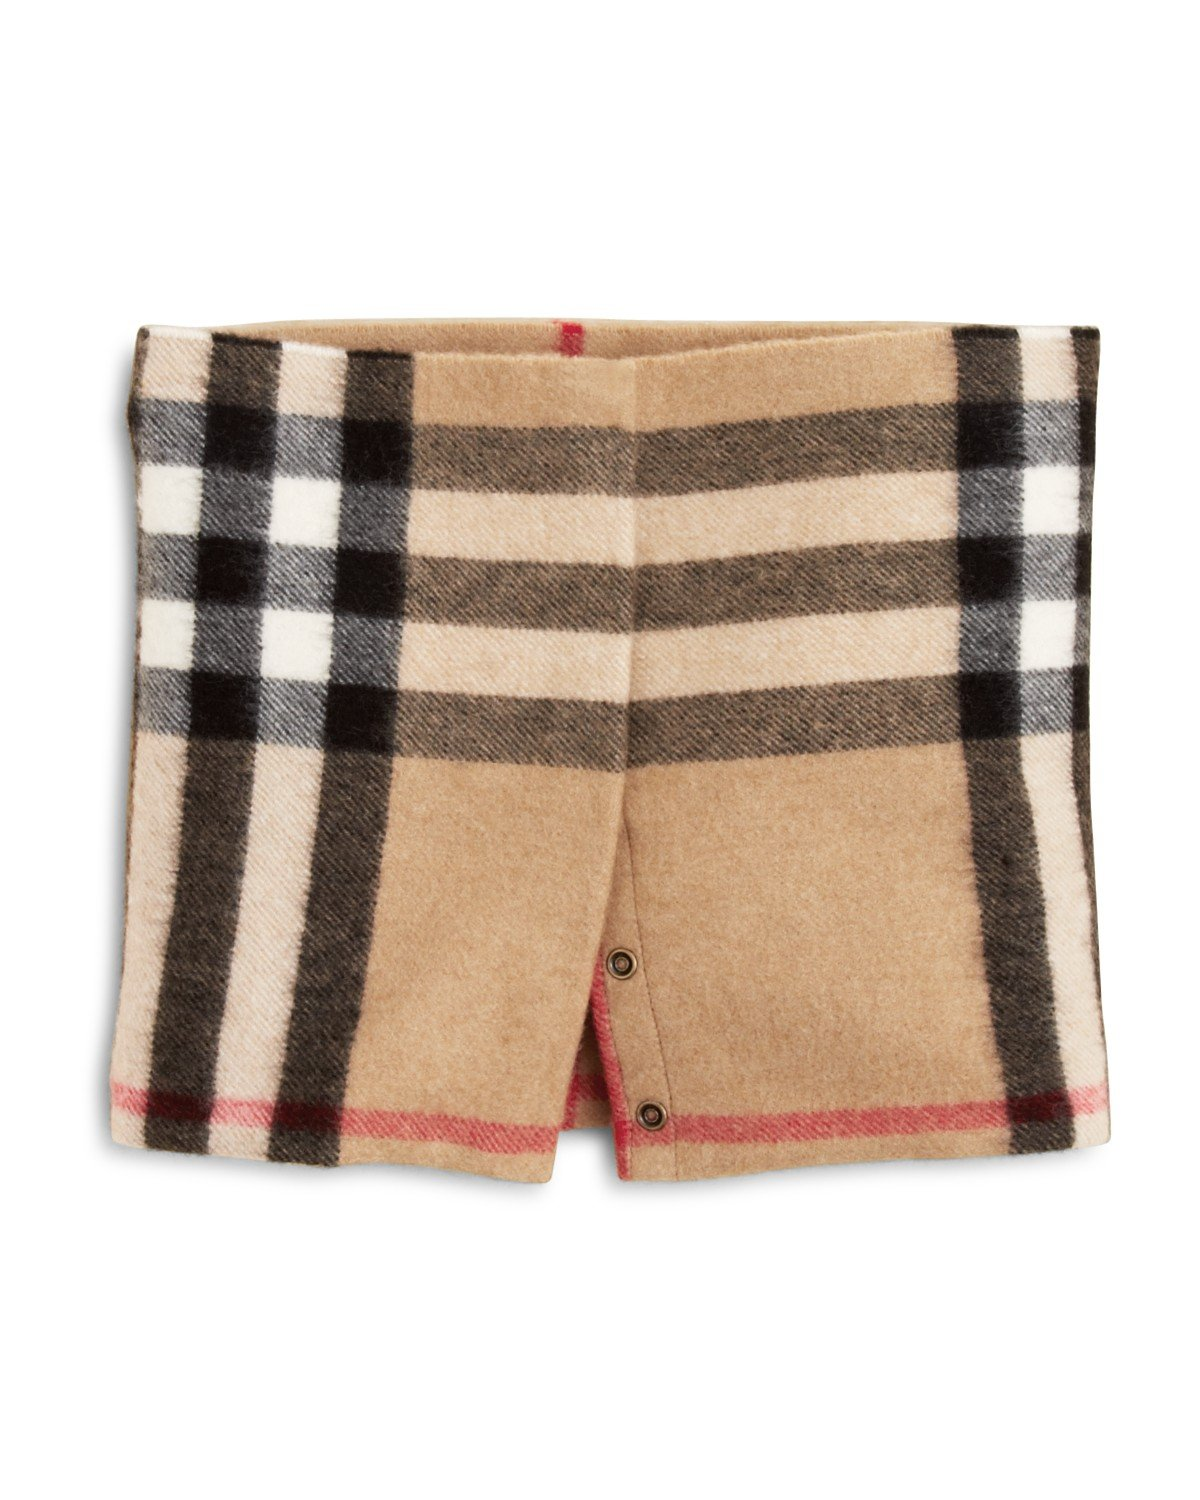 Burberry Classic Check Stole